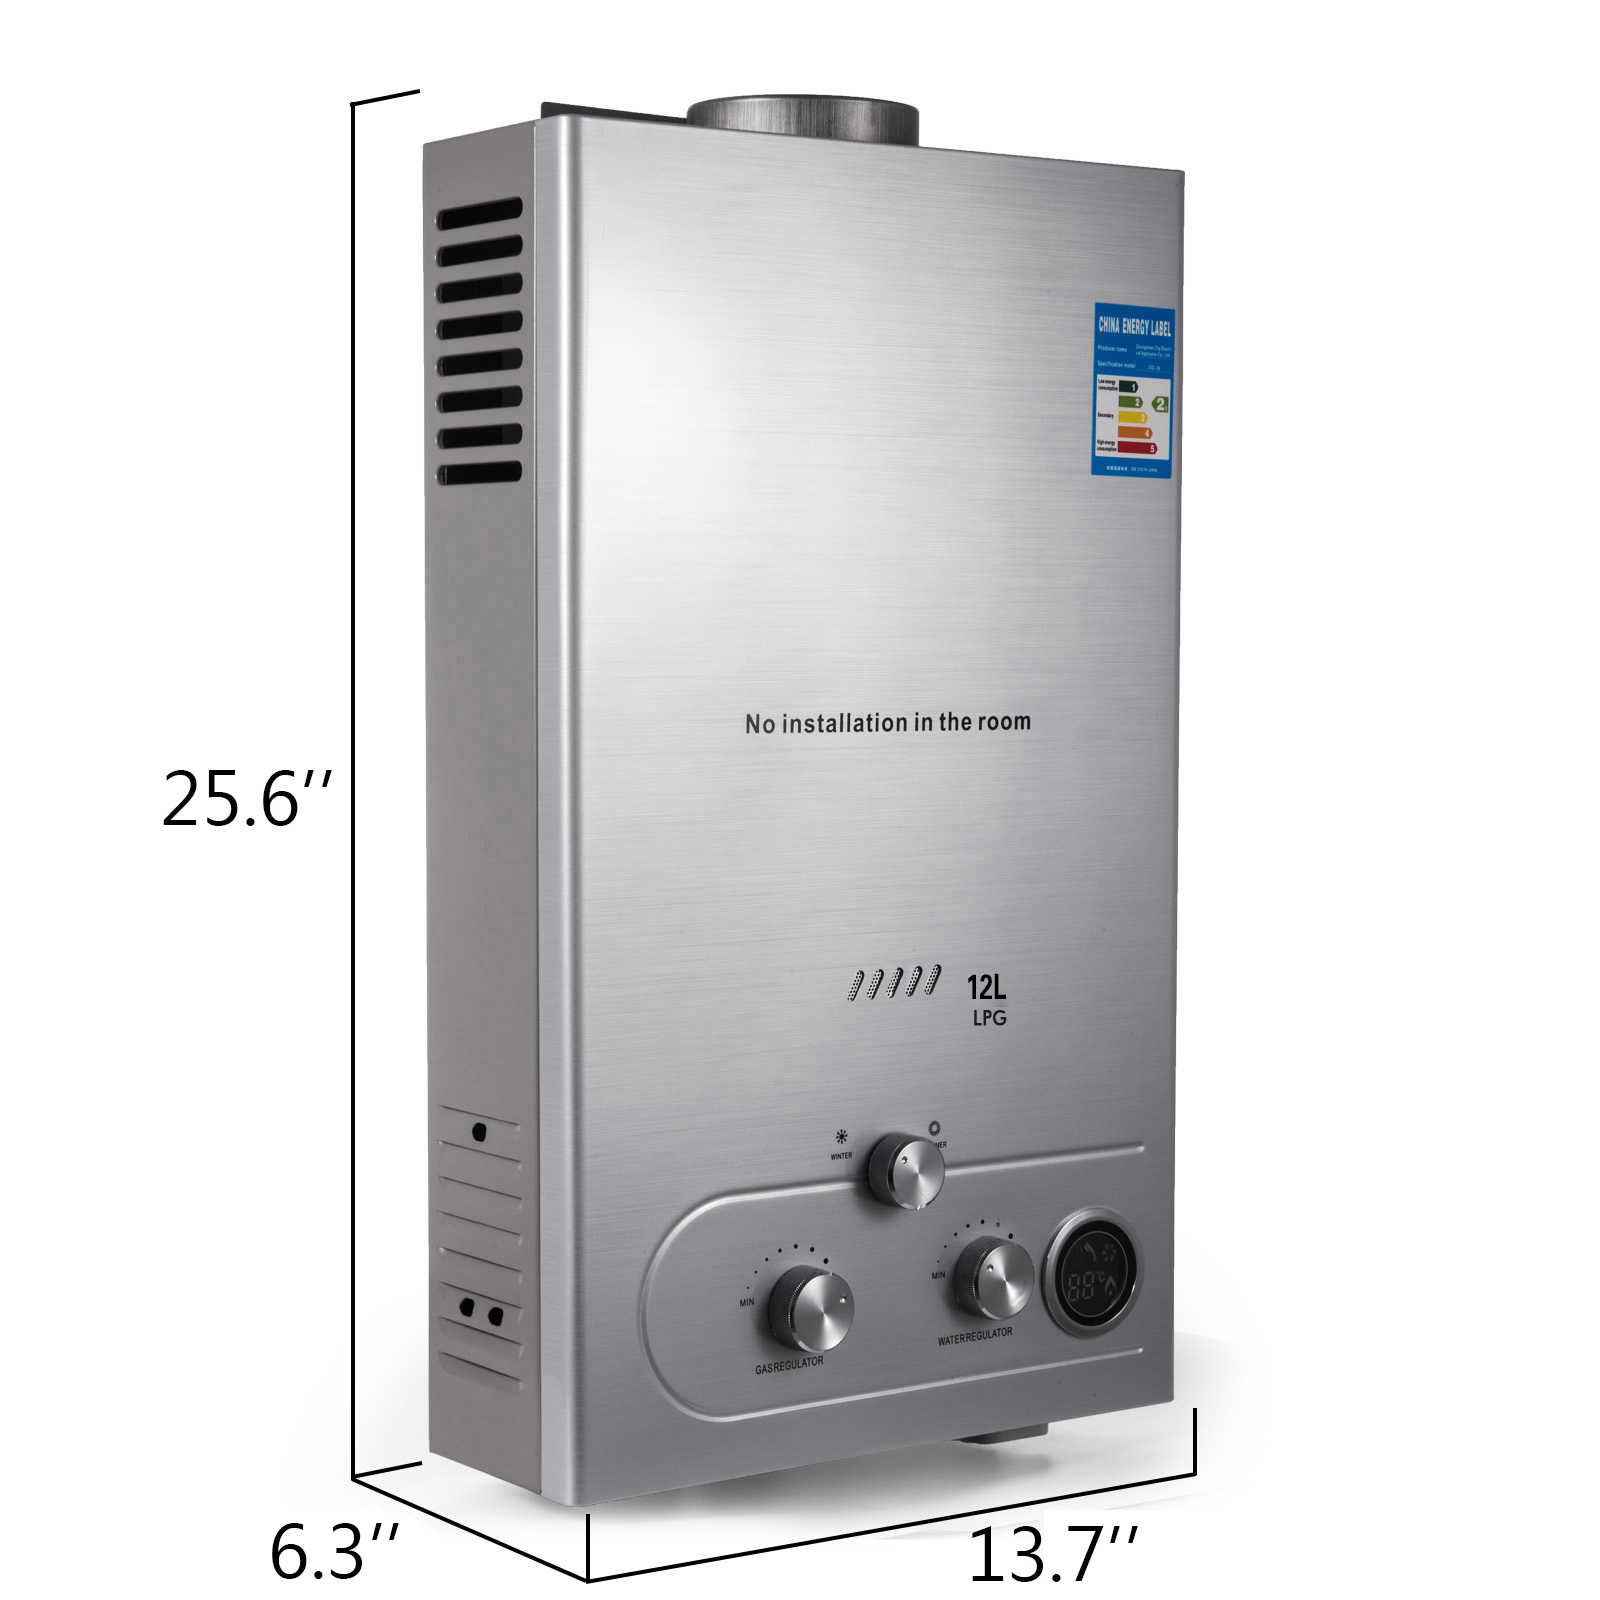 12 litres fiable chauffe eau instantan gaz propane avec. Black Bedroom Furniture Sets. Home Design Ideas